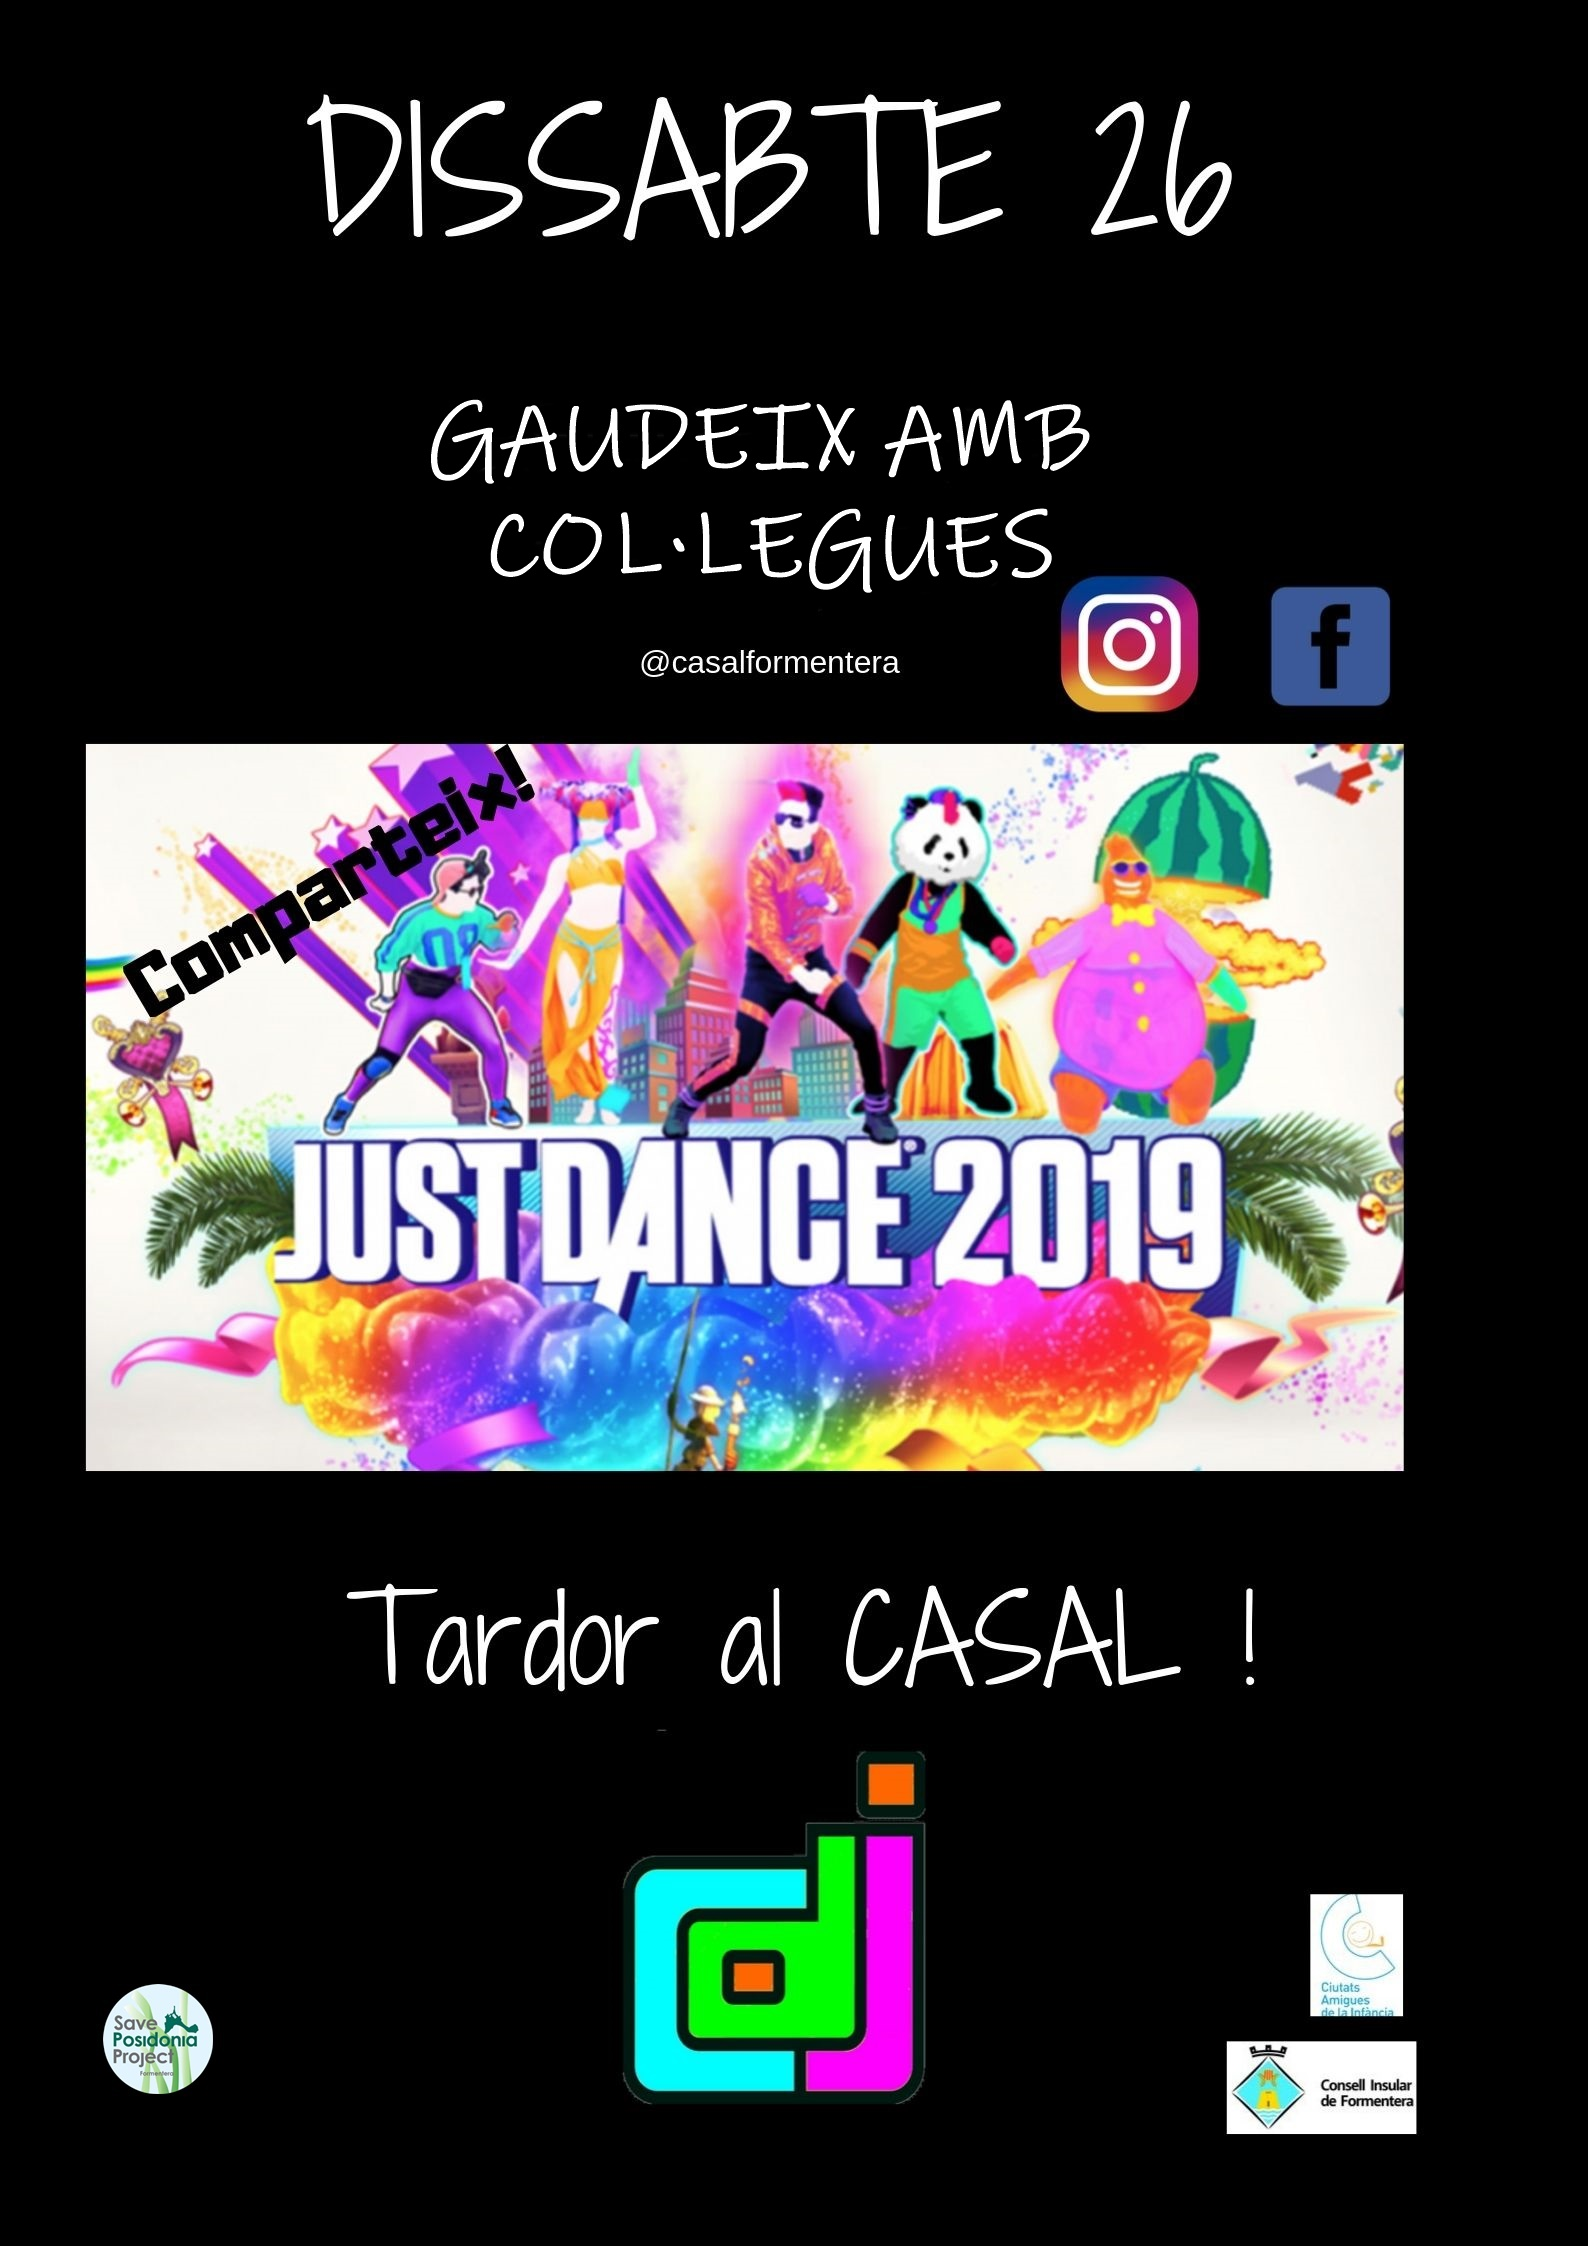 26. Just dance 5 còpies